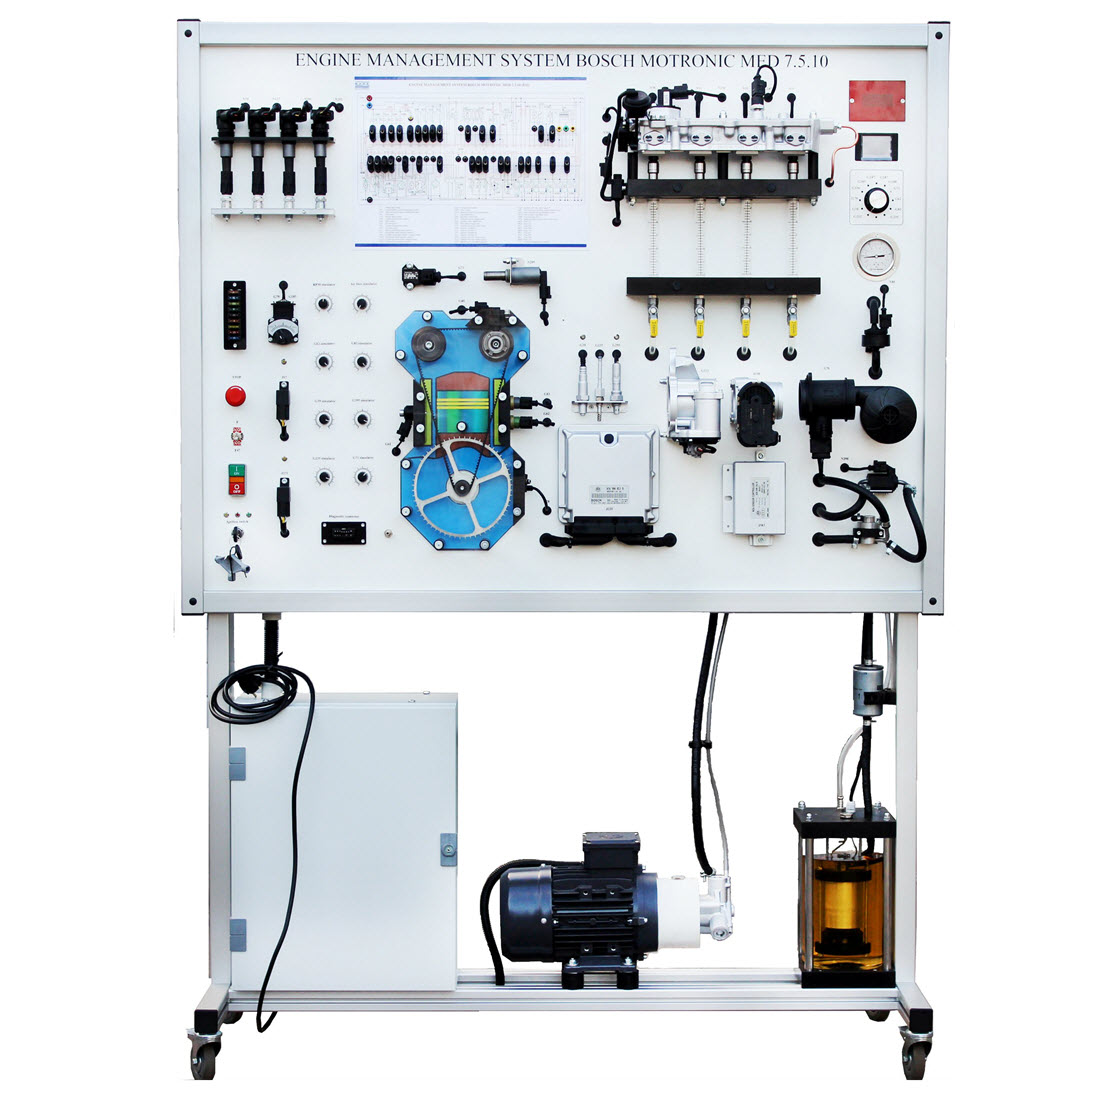 Bosch Motronic Fsi Training Board Simulator For Sale Oxygen Sensor This Is Built From A